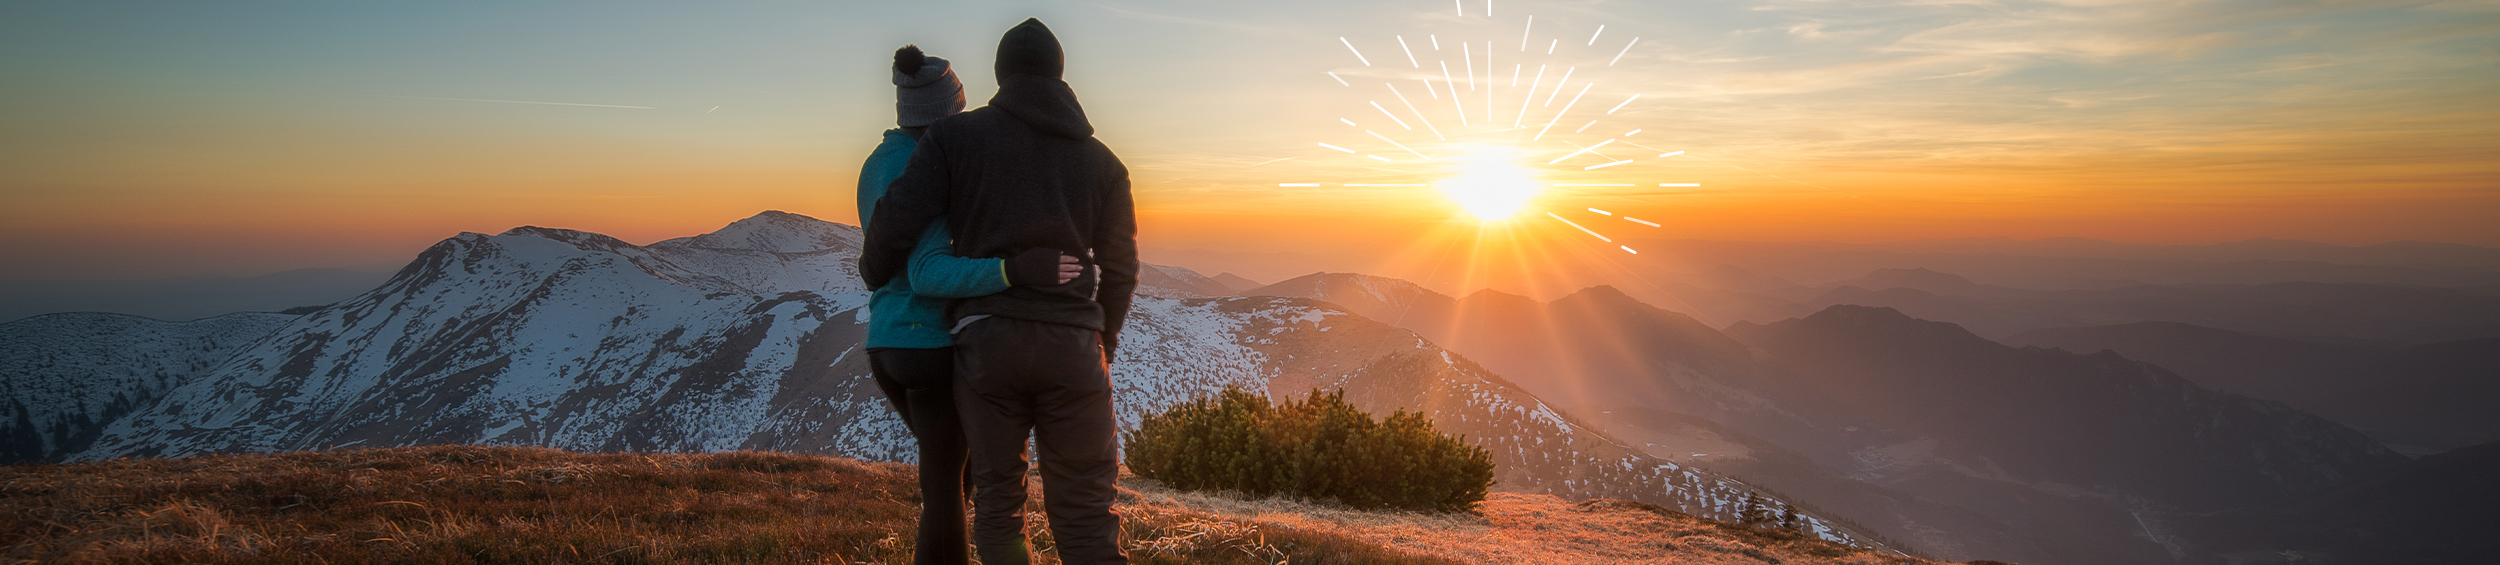 A couple standing at the top of a mountain watching the sunset